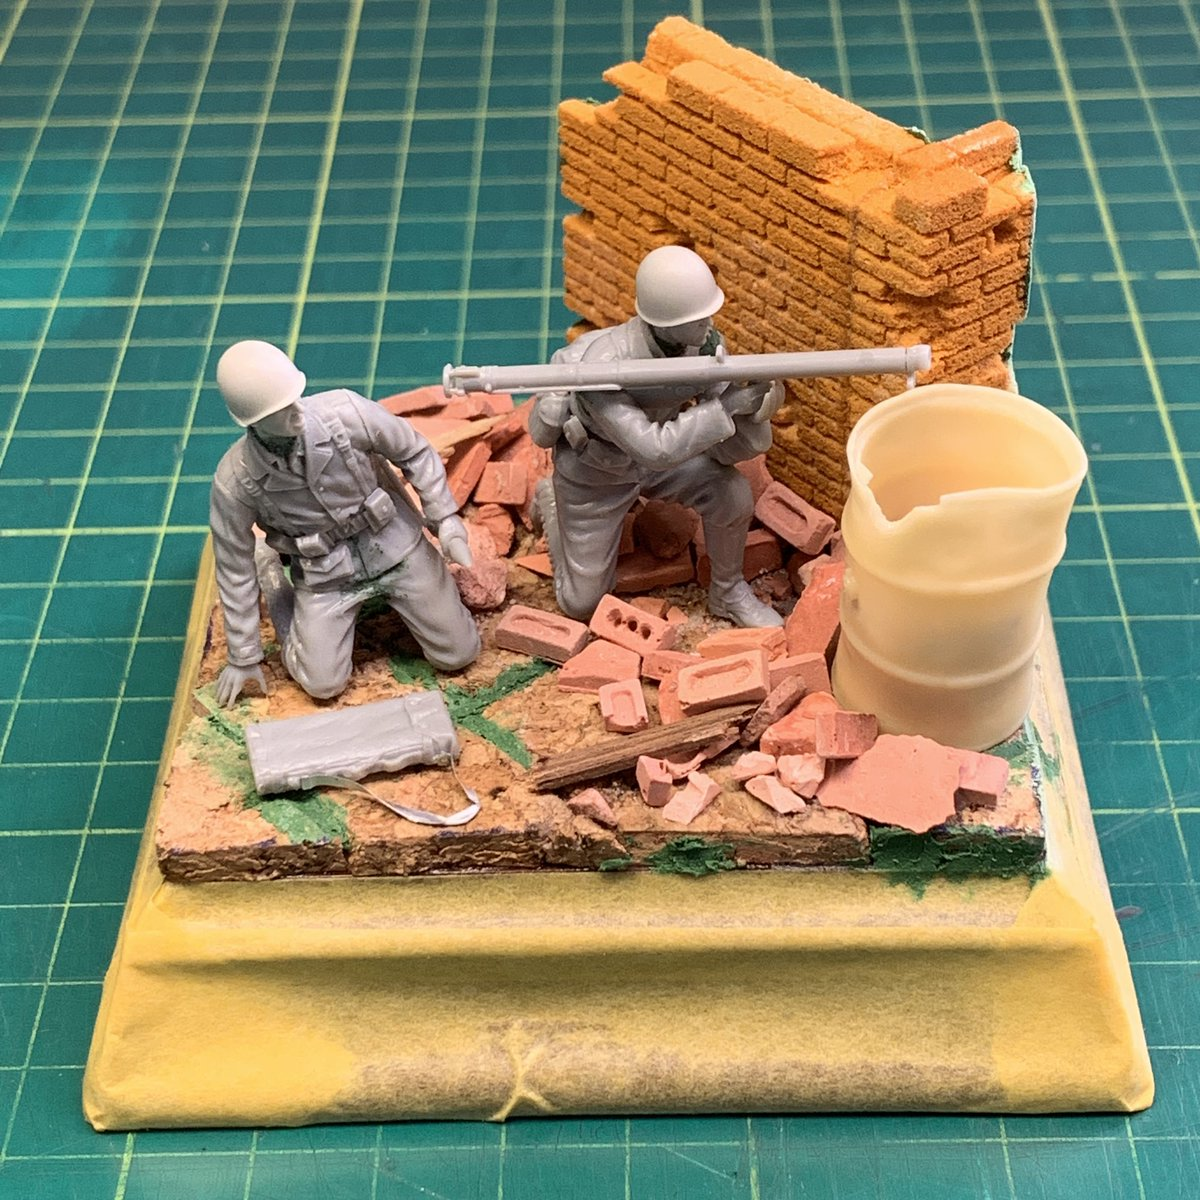 Okay, final composition for this, I think... There are a few other items to be placed during final assembly, which are not shown here... I don't want to give you everything at such an early stage!  #scalemodels #miniatures pic.twitter.com/tb1RrInY8V